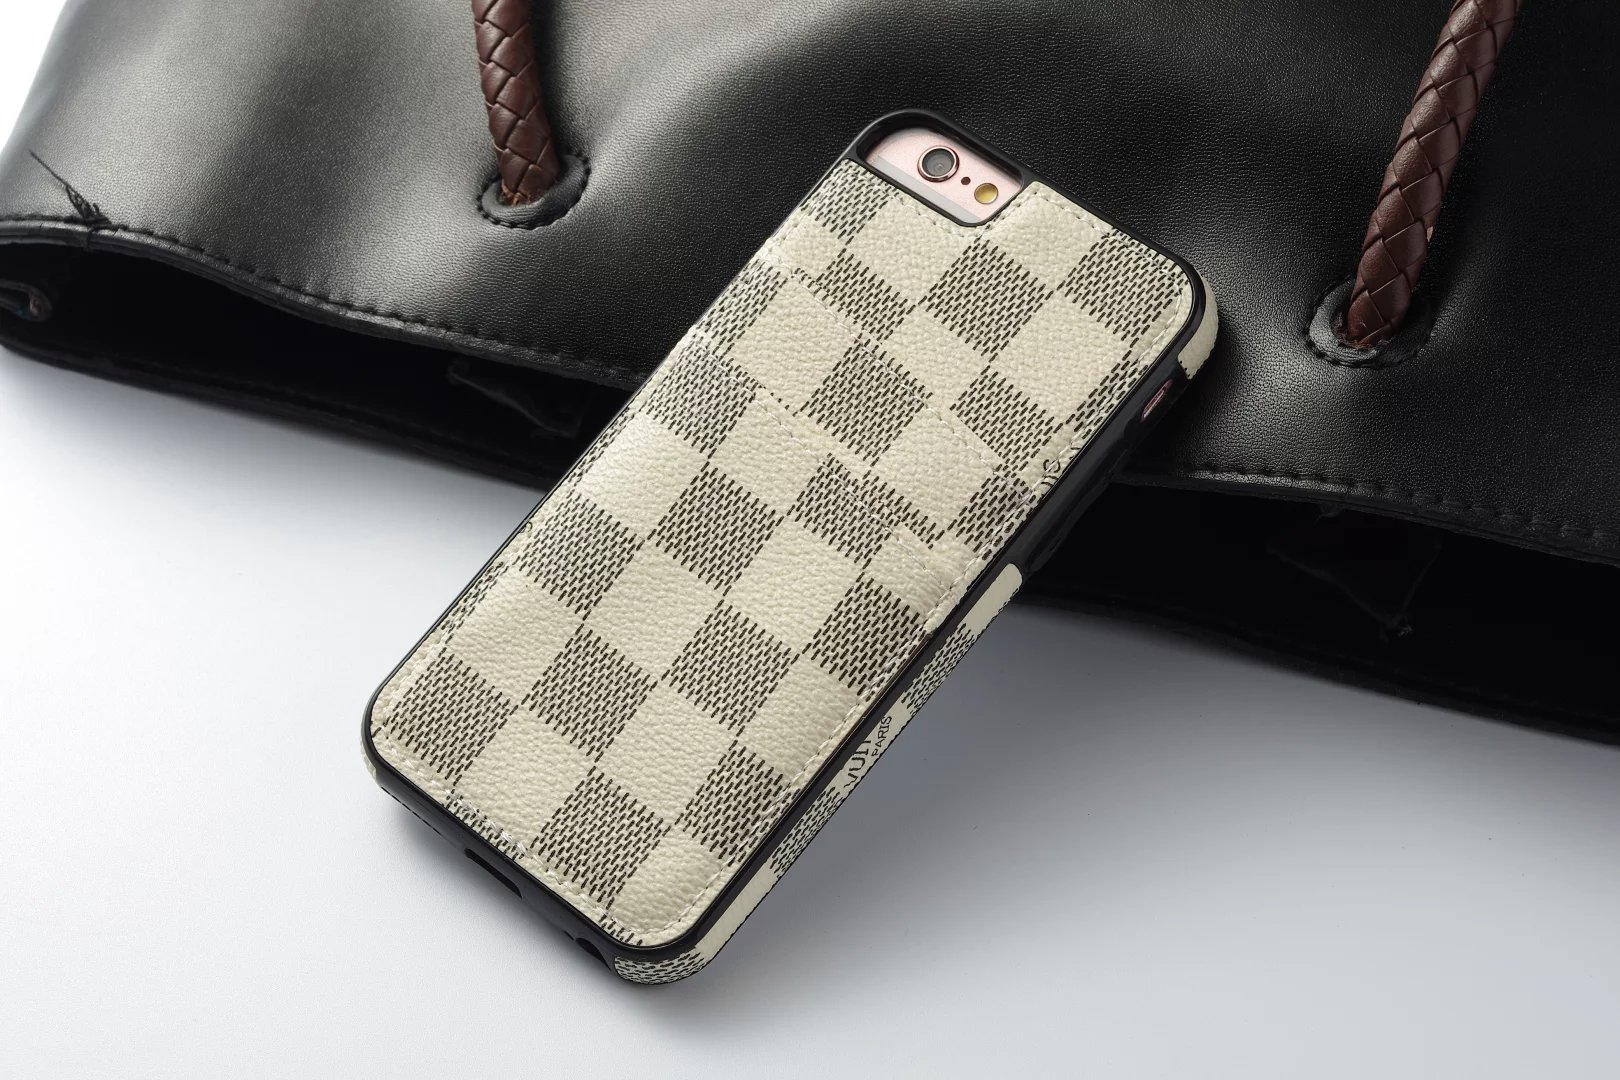 lederhülle iphone individuelle iphone hülle Louis Vuitton iphone7 hülle ausgefallene iphone 7 hüllen iphone zubehör iphone silikon iphone 7 günstig iphone hülle apple iphone 7 hülle kaufen